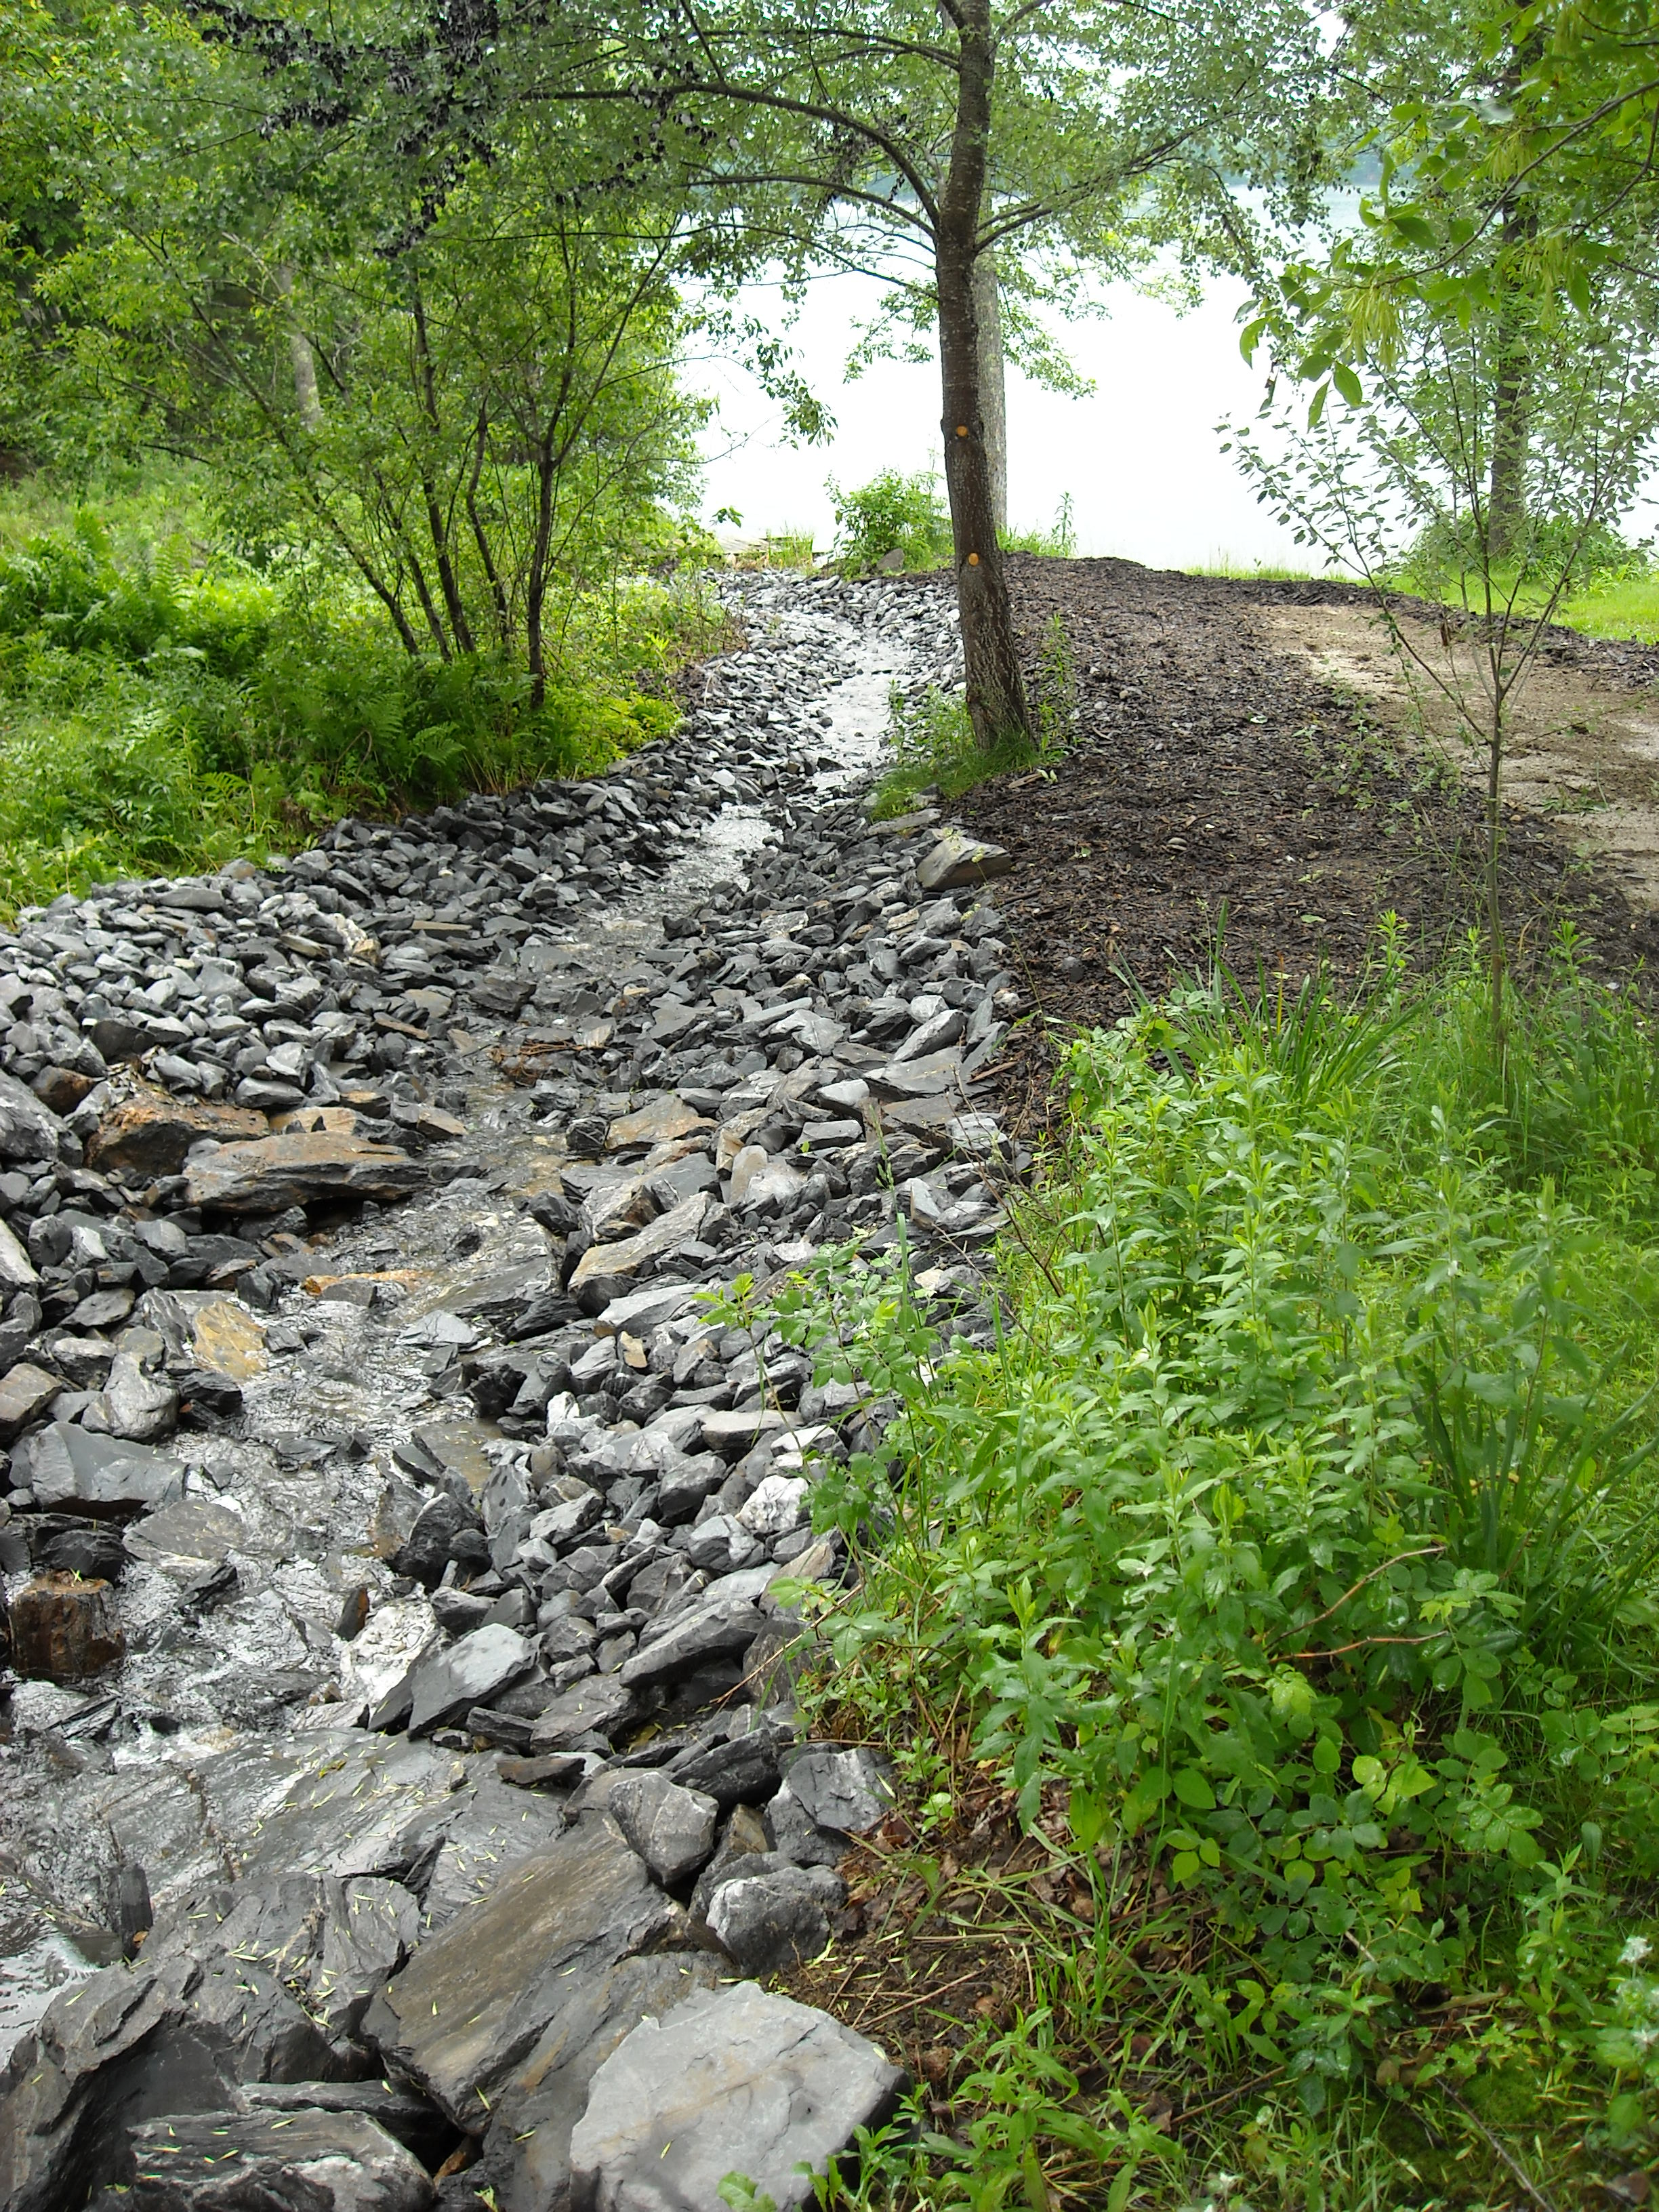 MES is an expert at planning and building lasting erosion controls.